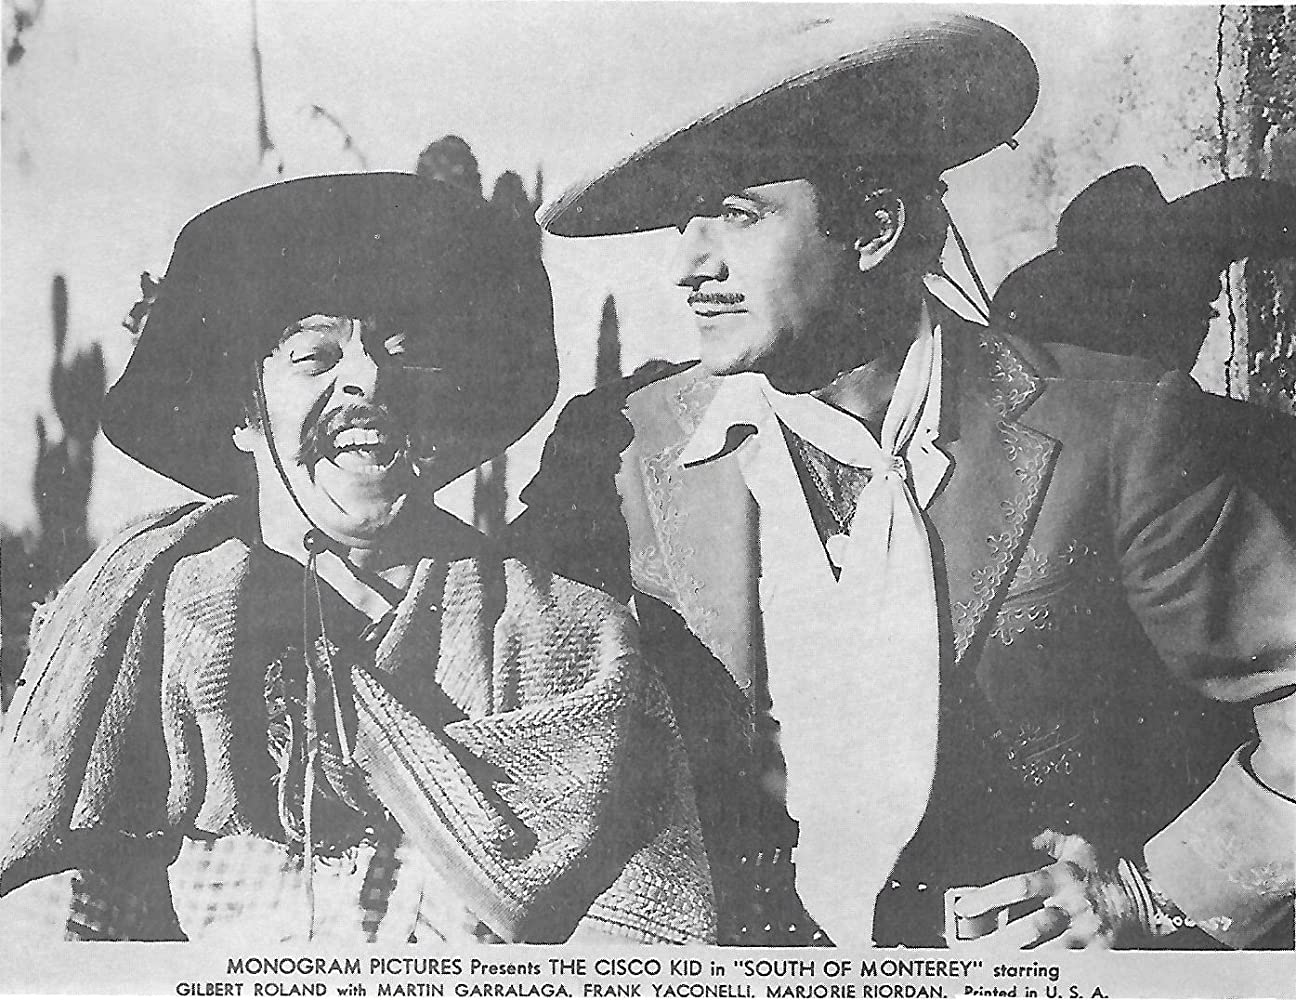 Gilbert Roland and Frank Yaconelli in South of Monterey (1946)